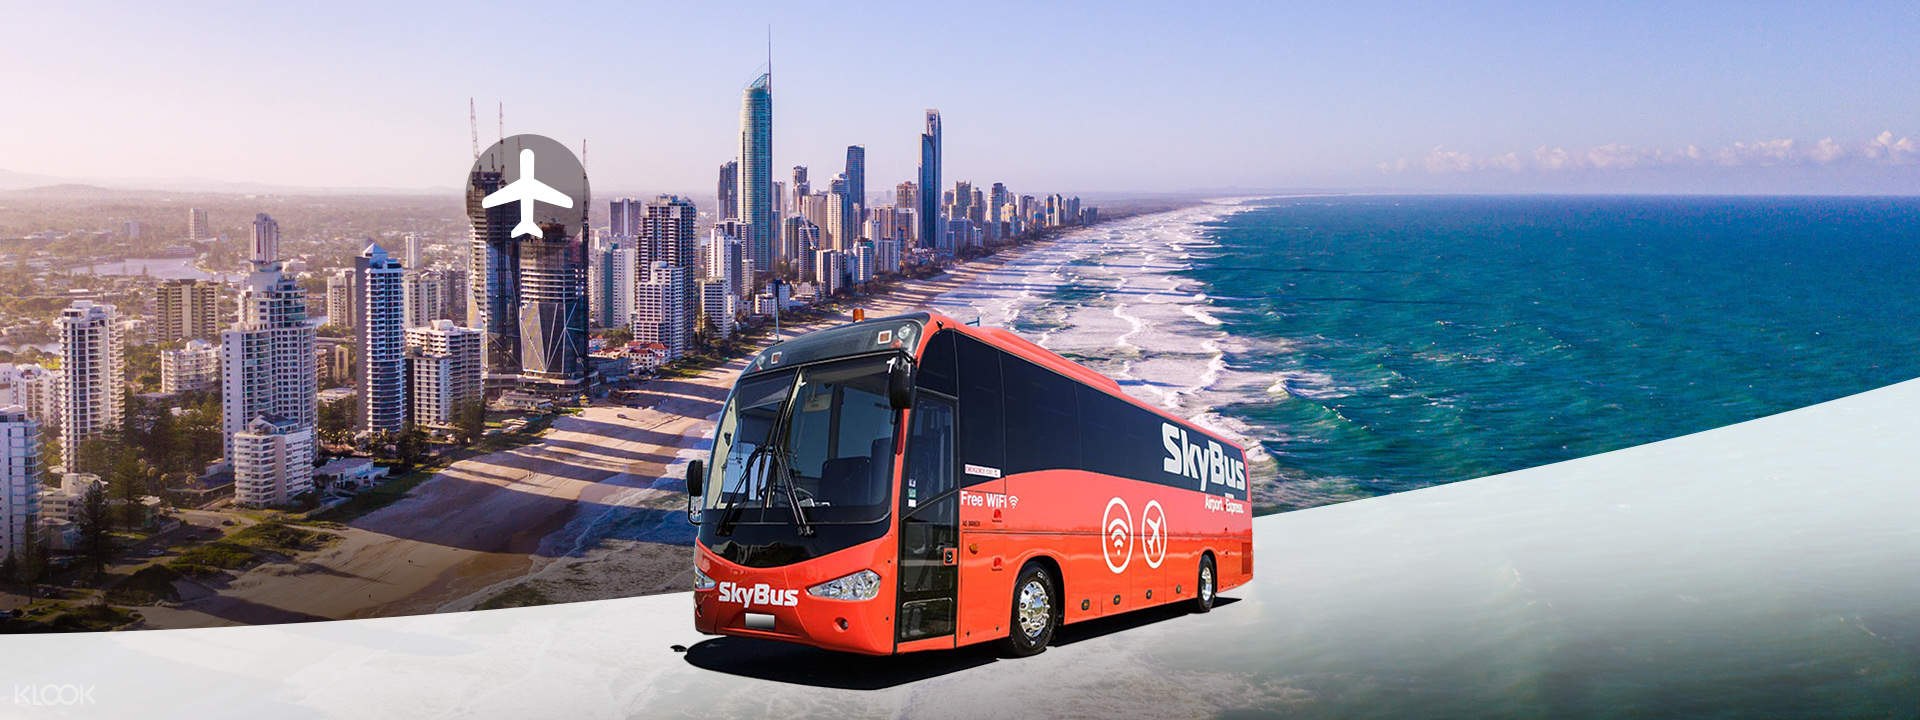 Hobart Airport (HBA) Express Bus Transfers by SkyBus, Australia - Klook